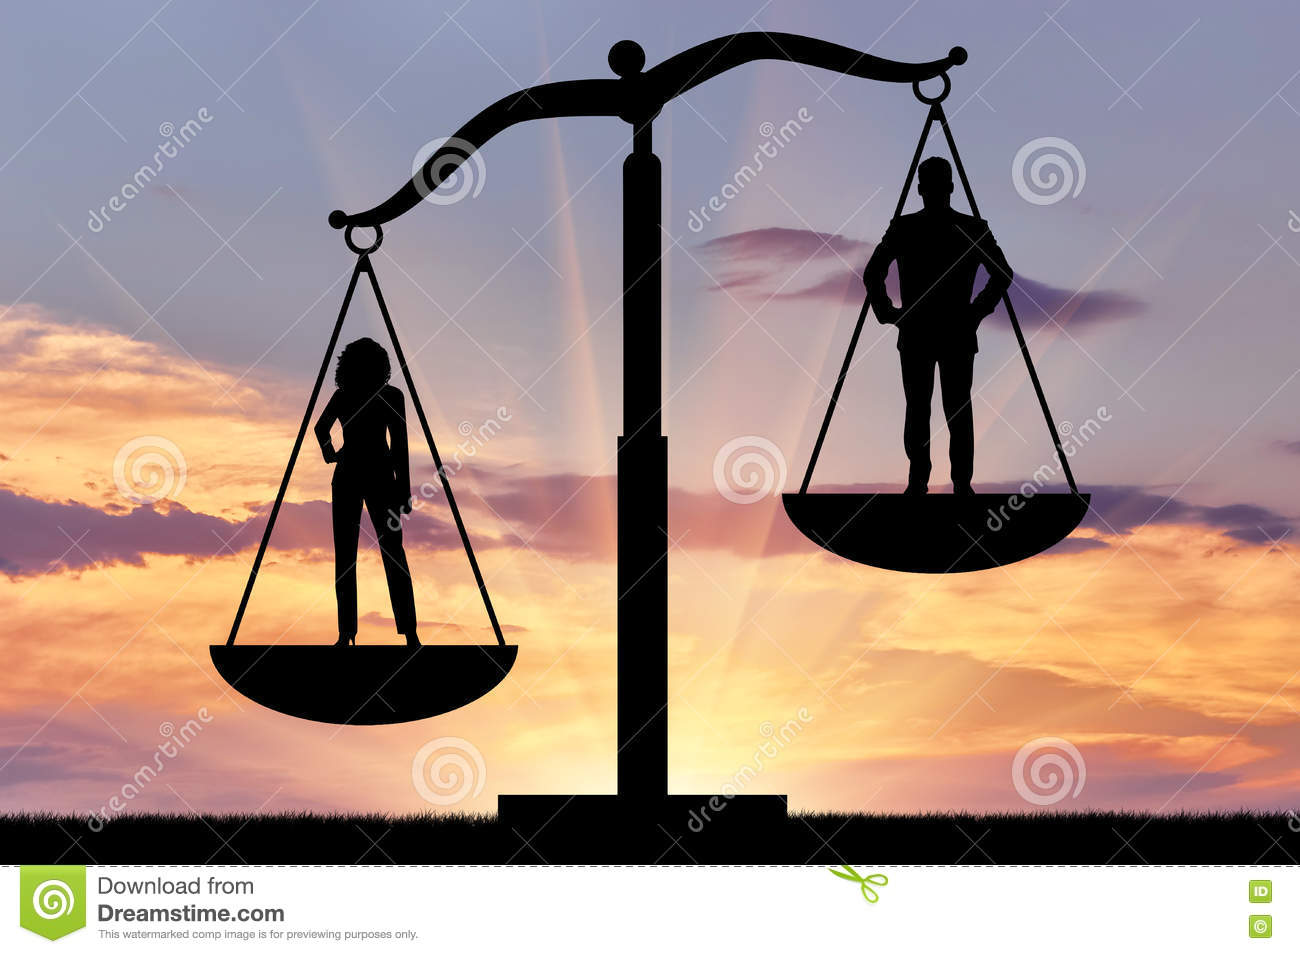 Dominance of women against men, on the scales of justice